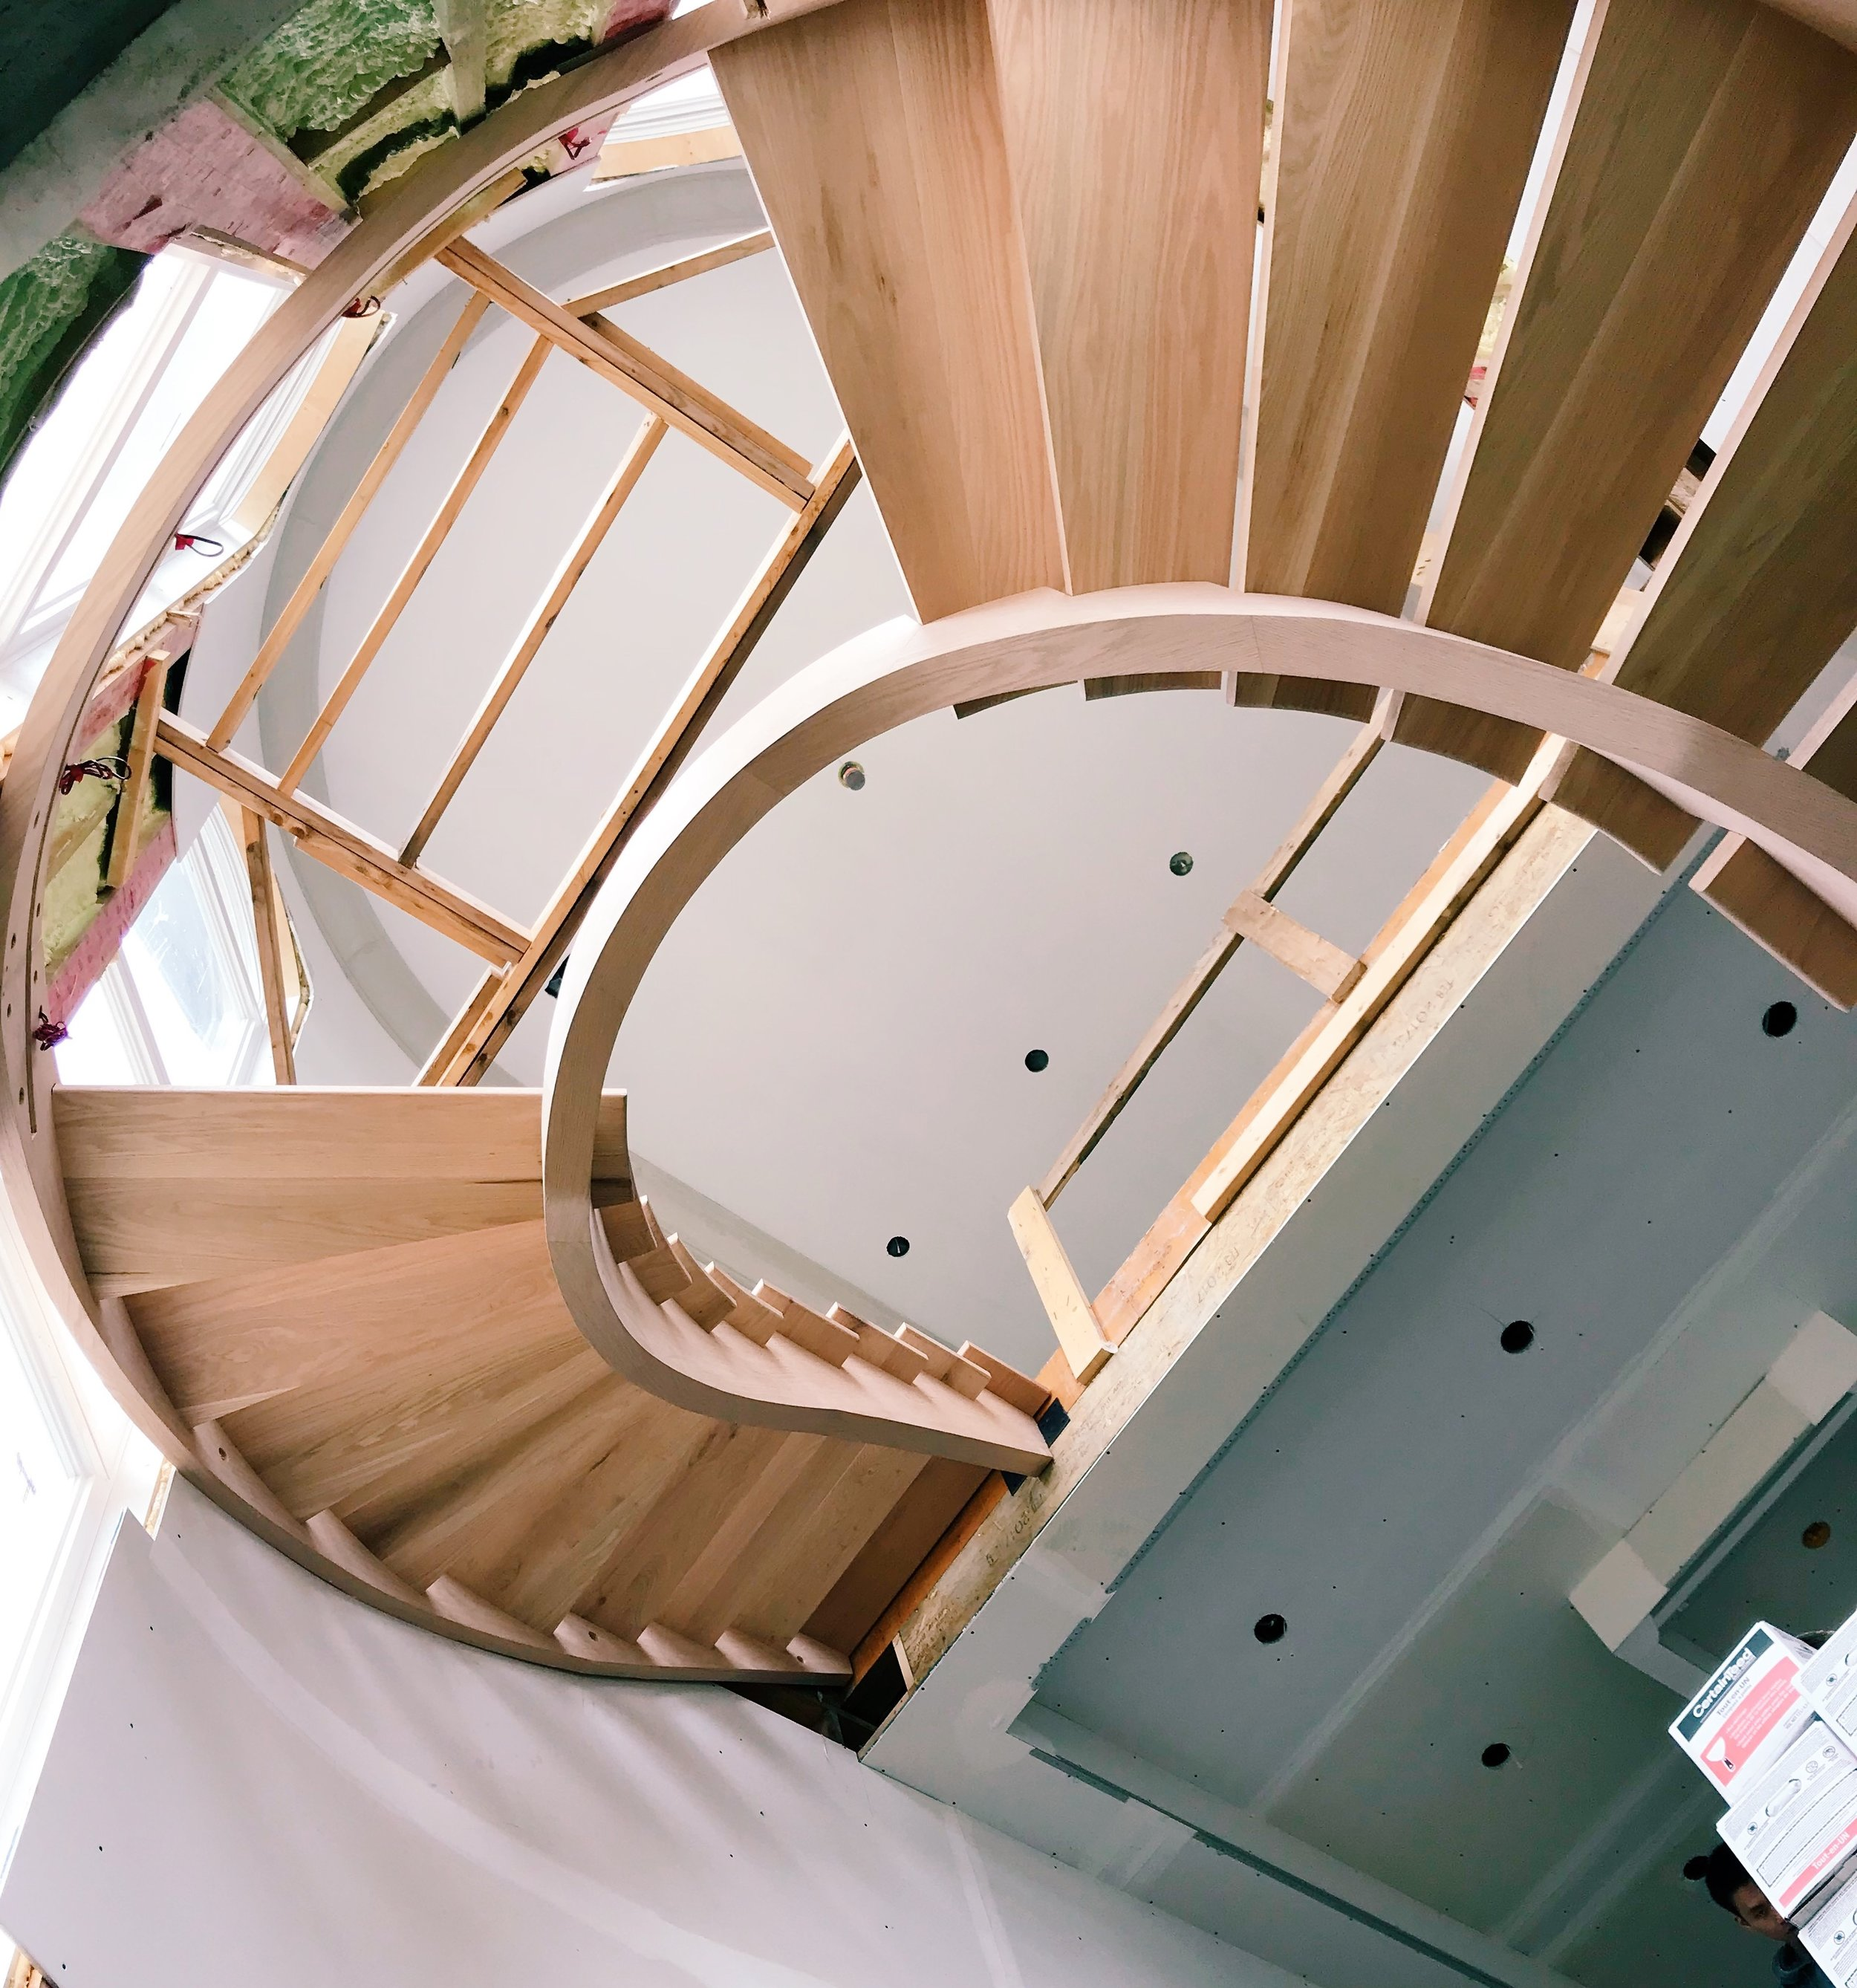 ConstructingNew Stairs - Constructing brand new staircase is not an easy job. After stair tread production, step by step we build the staircase as a team. With solidwood stringers, risers, treads, but most importantly, with our 20 years of field experience. Today, we assist builders in finishing the last touch to their project.